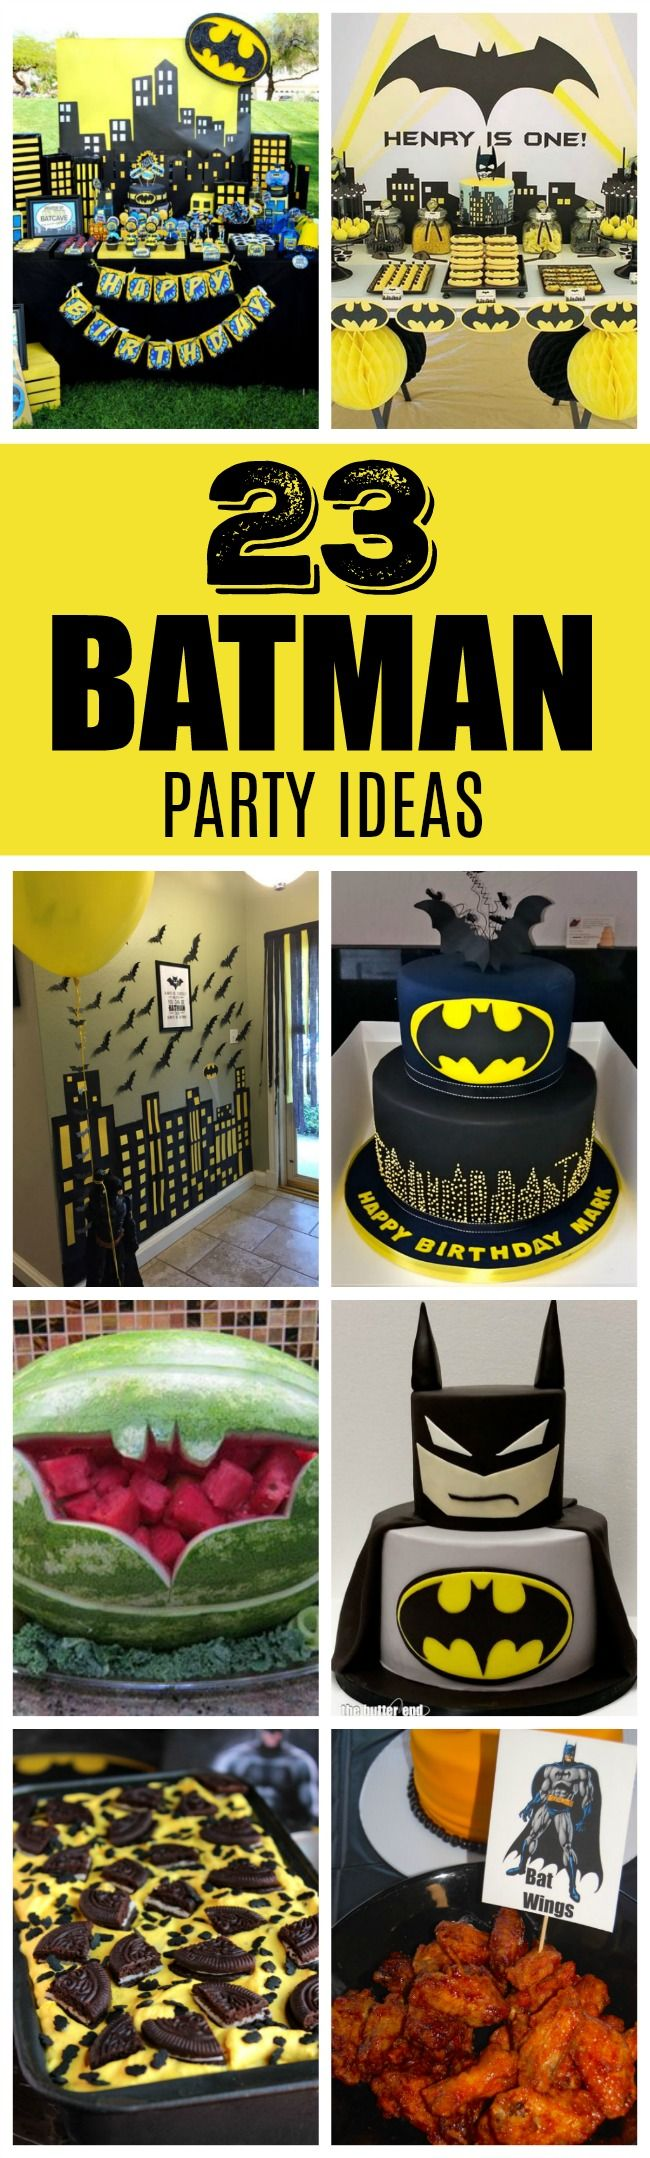 23 Incredible Batman Party Ideas | Pretty My Party